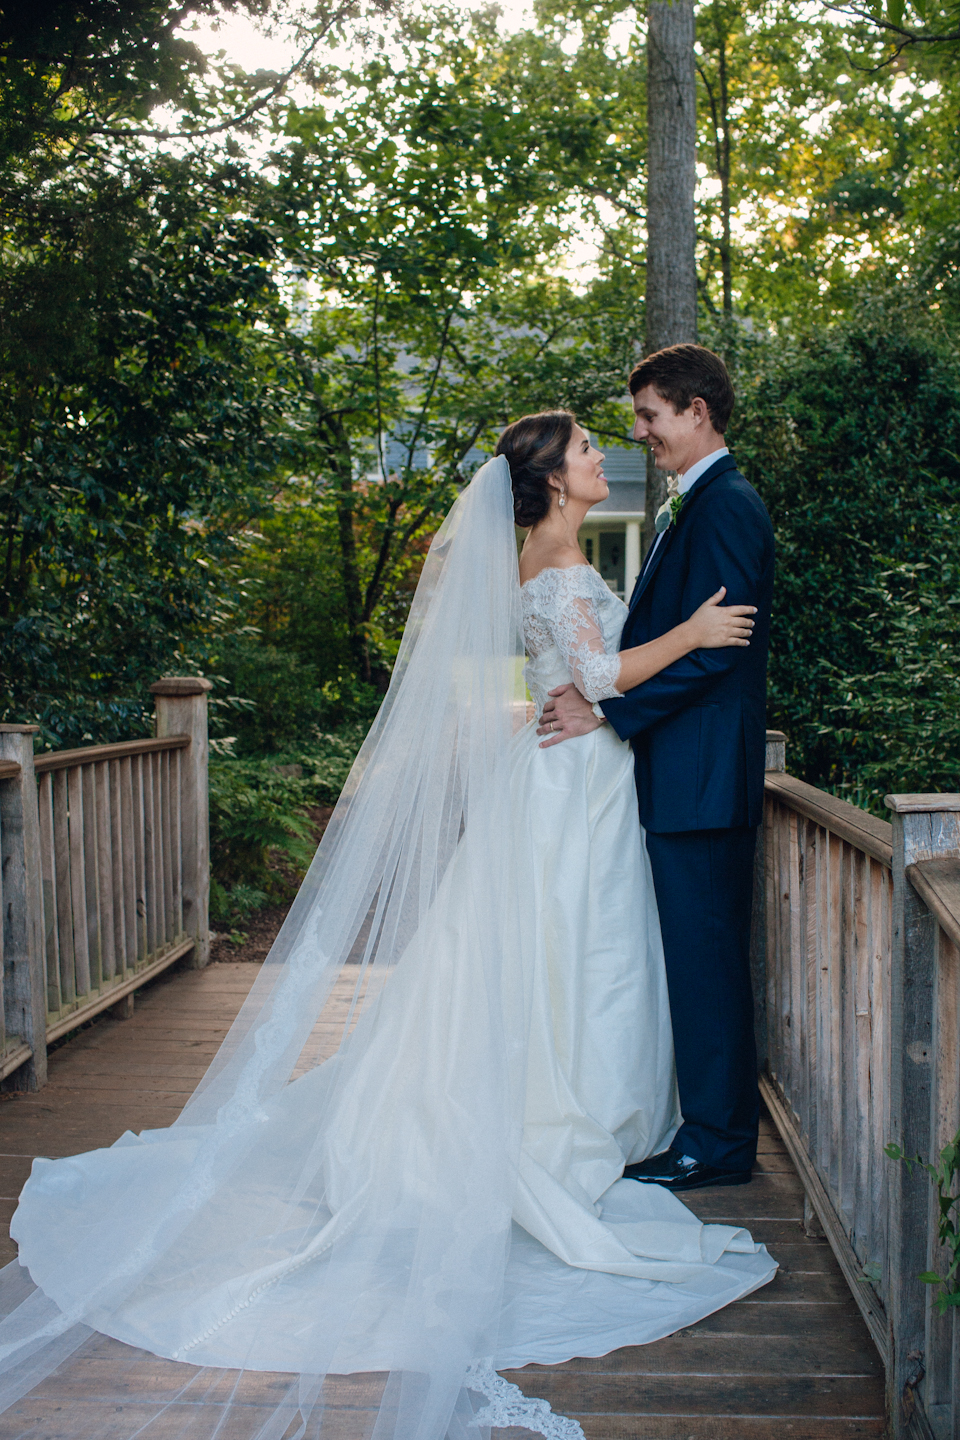 charlotteweddingphotographerivyplaceweddingwestminsterpresbyterian34.jpg